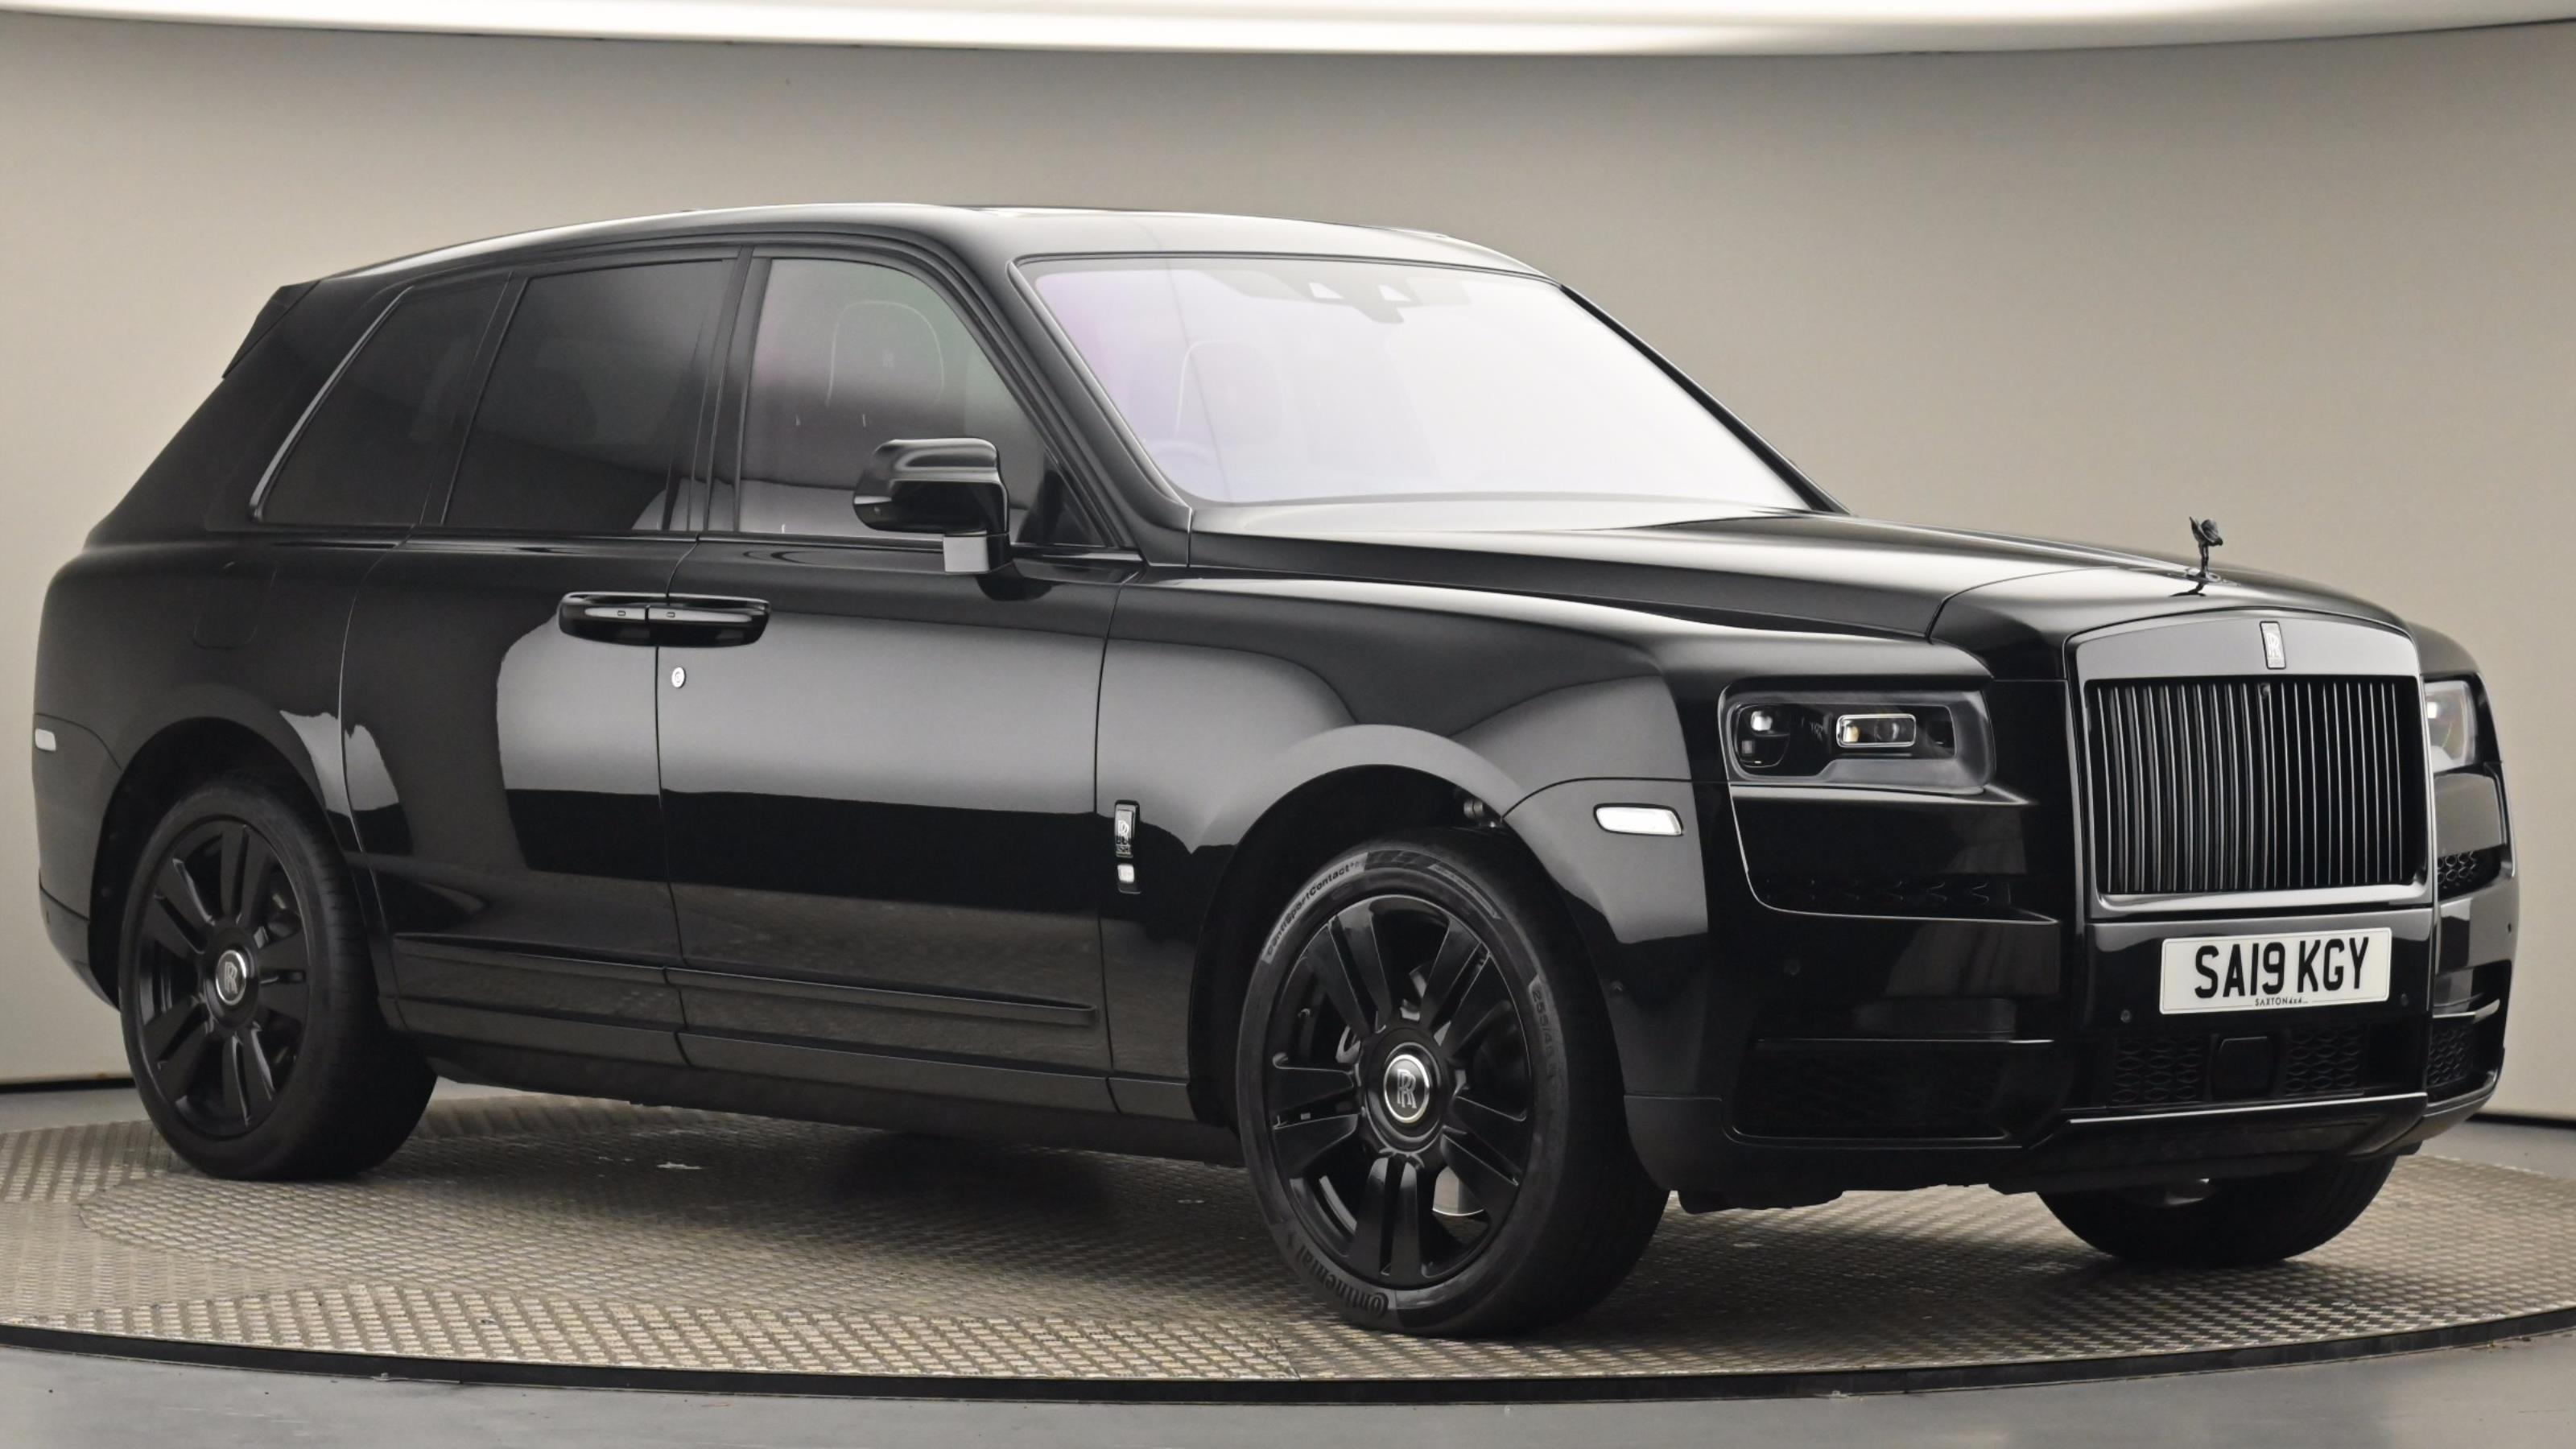 Used 2019 Rolls-Royce Cullinan V12 Auto BLACK at Saxton4x4